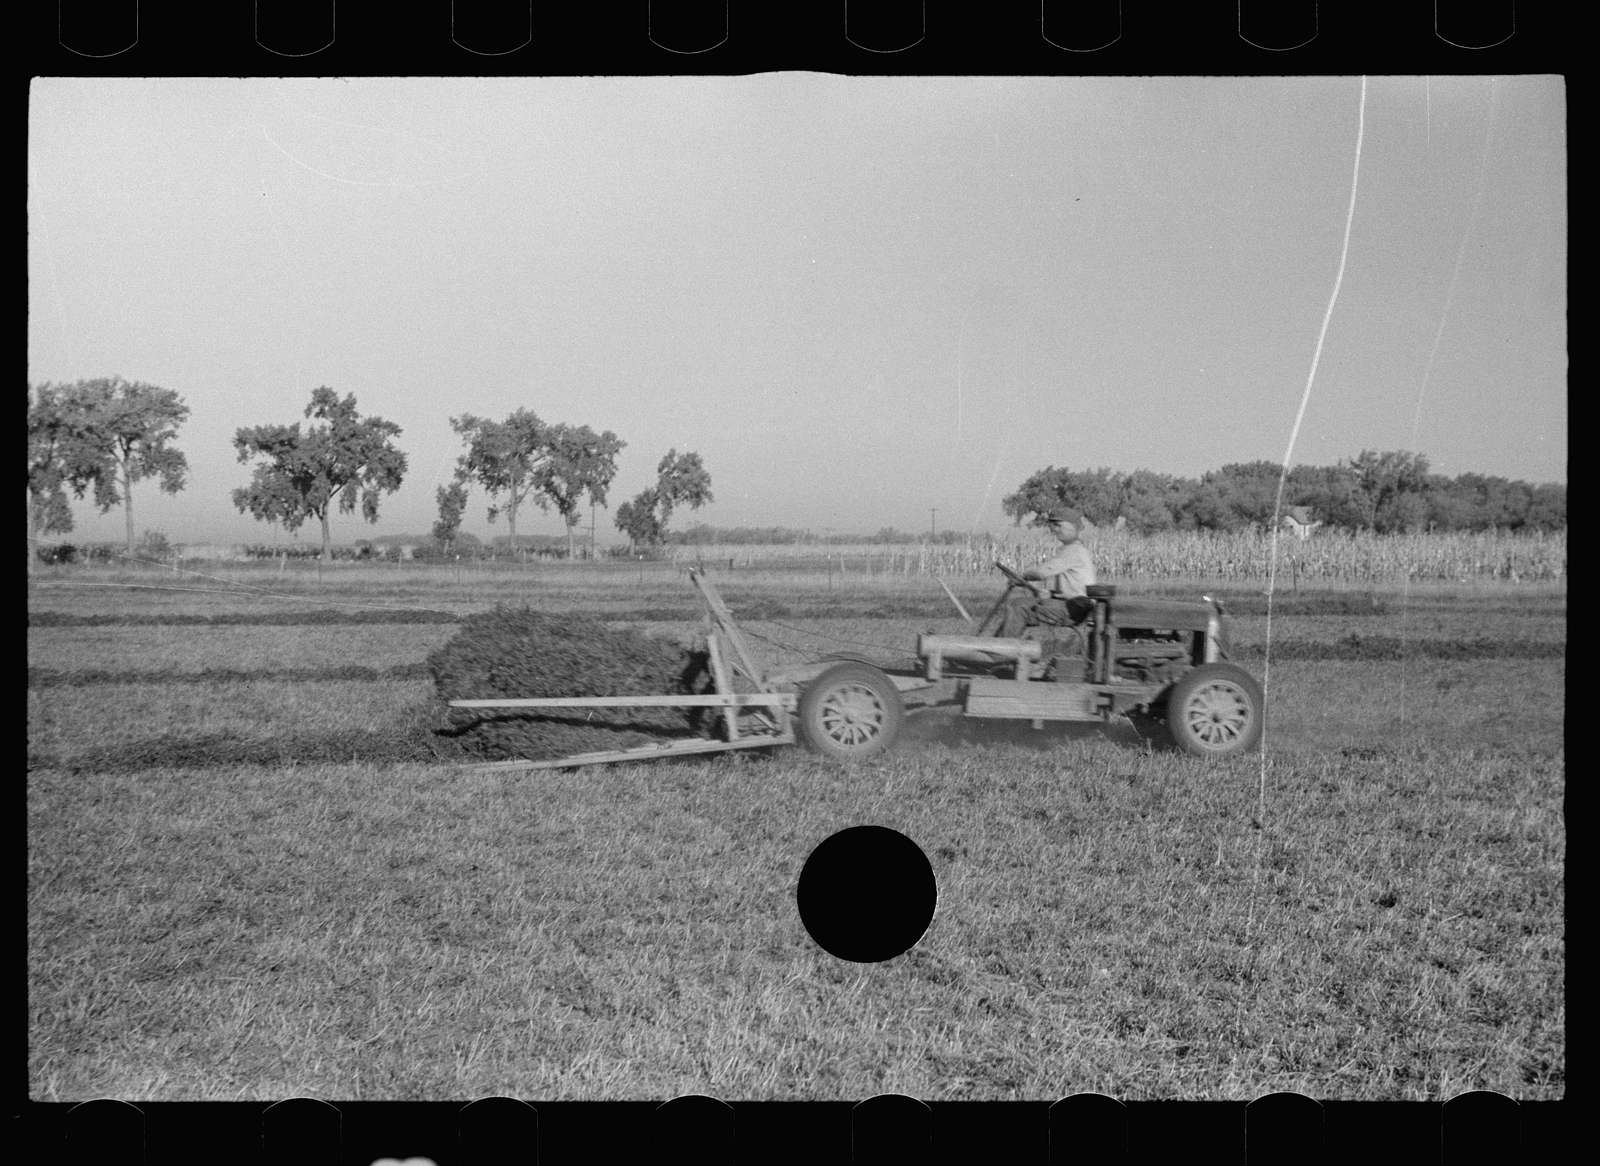 Untitled photo, possibly related to: Using a power rake on the alfalfa fields of Dawson County, Nebraska. Dawson County is the greatest alfalfa producing center in the world